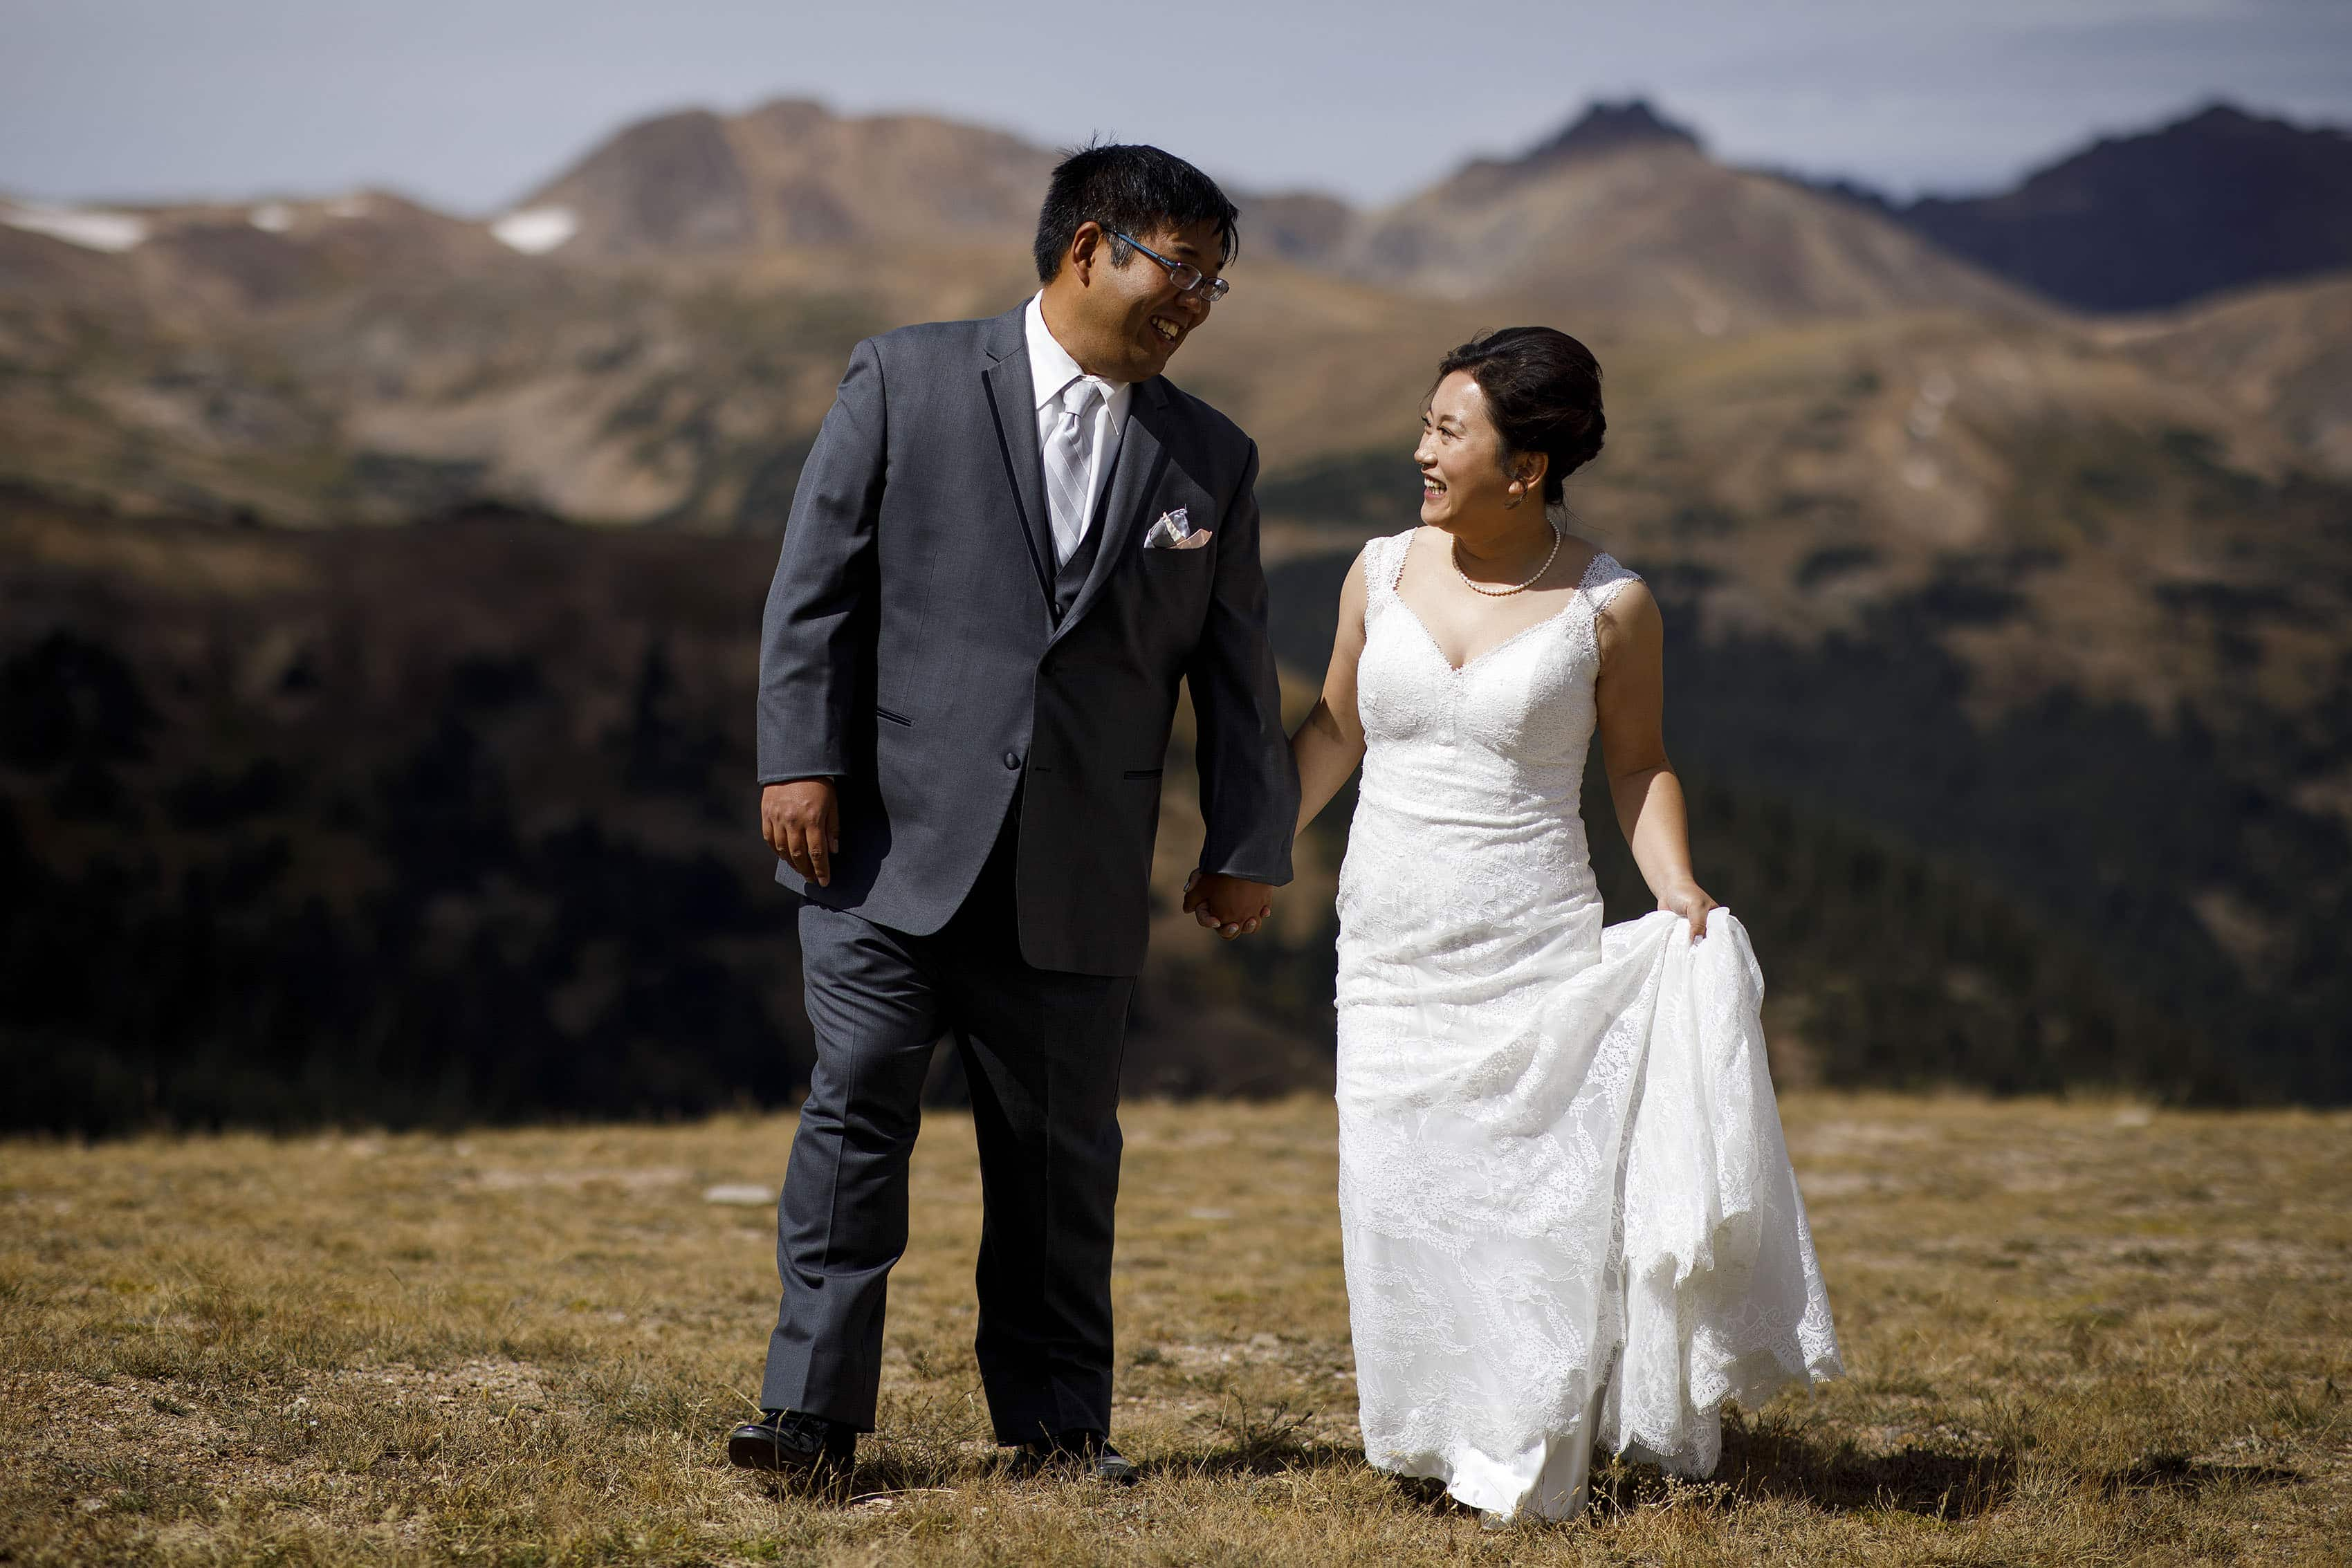 David and Xinya walk together on Loveland Pass during their wedding day